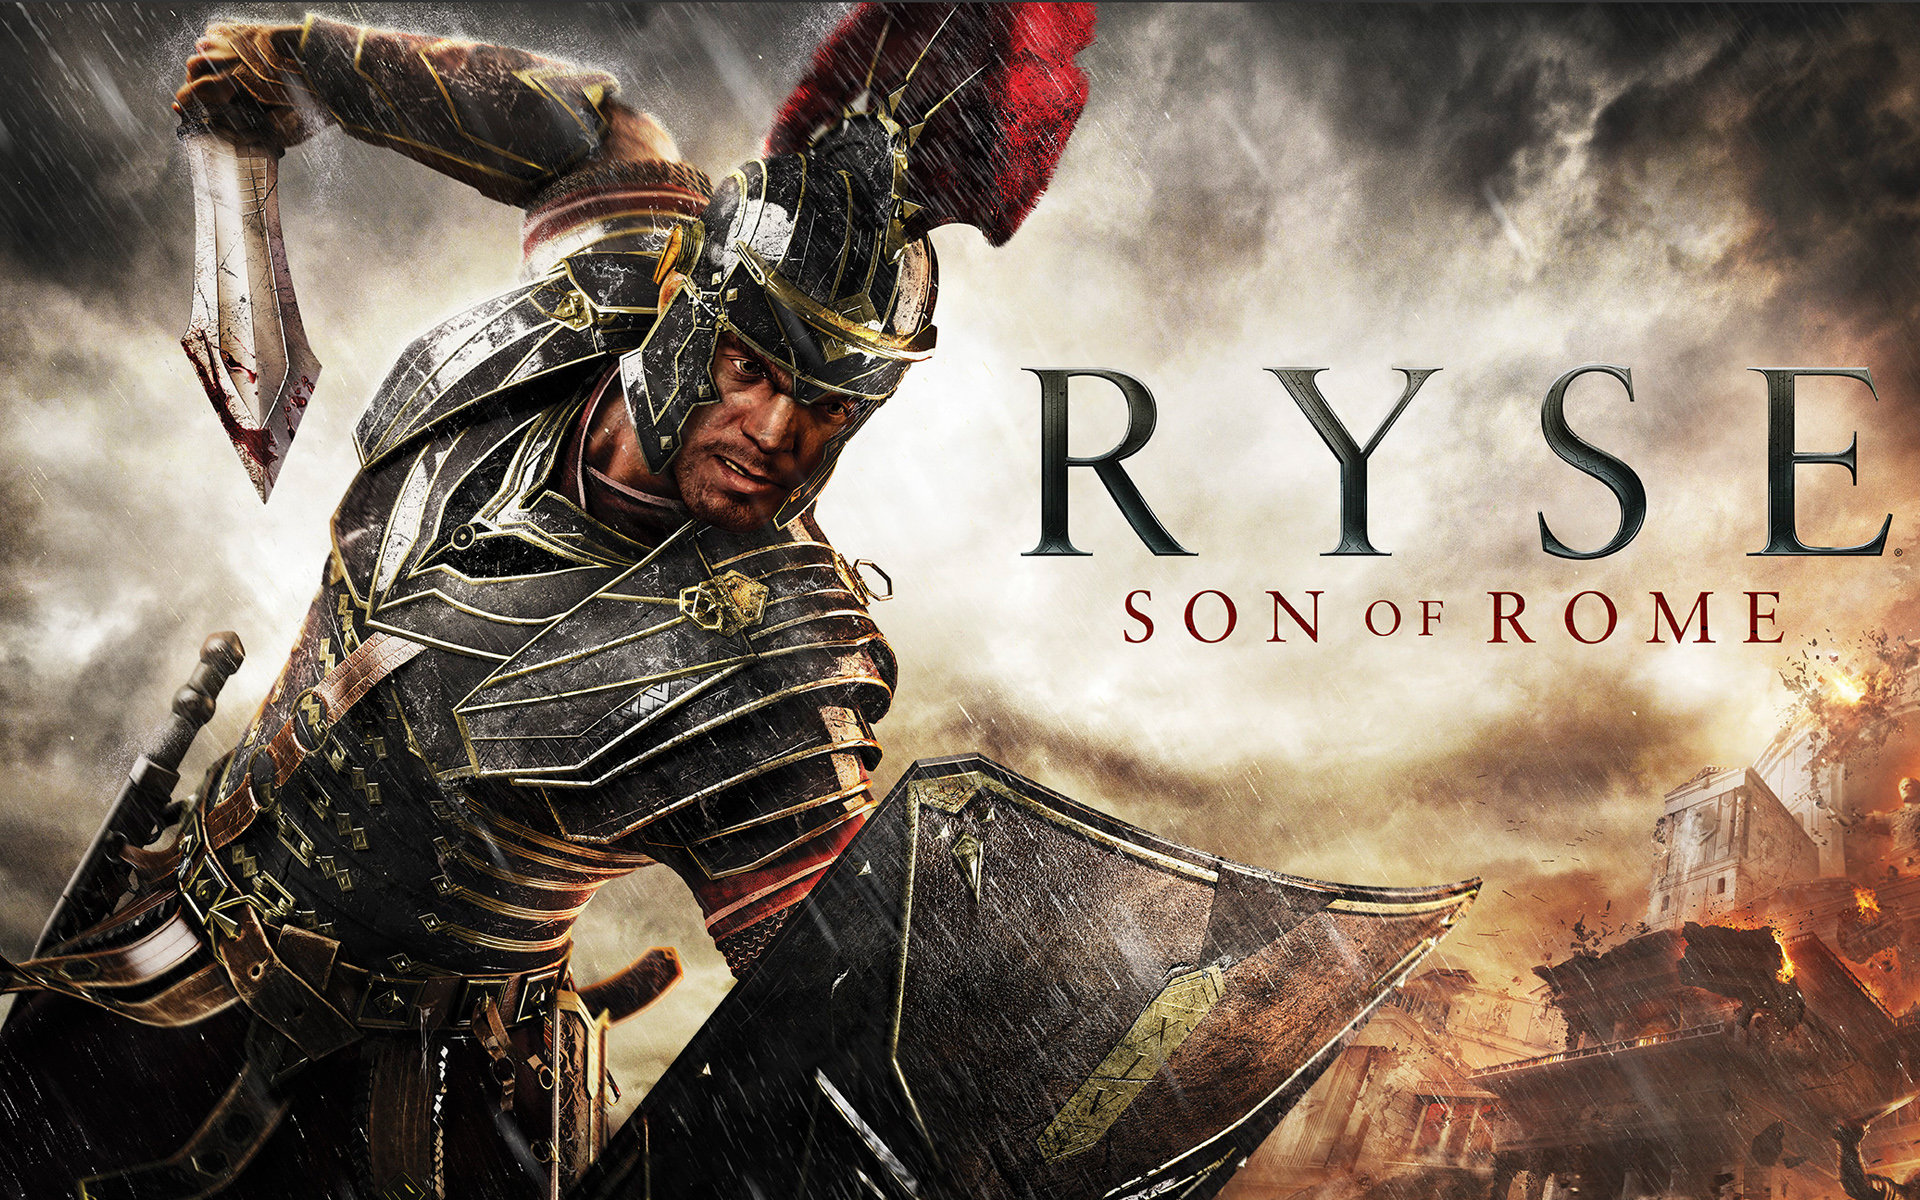 RYSE cover poster by  Crytek